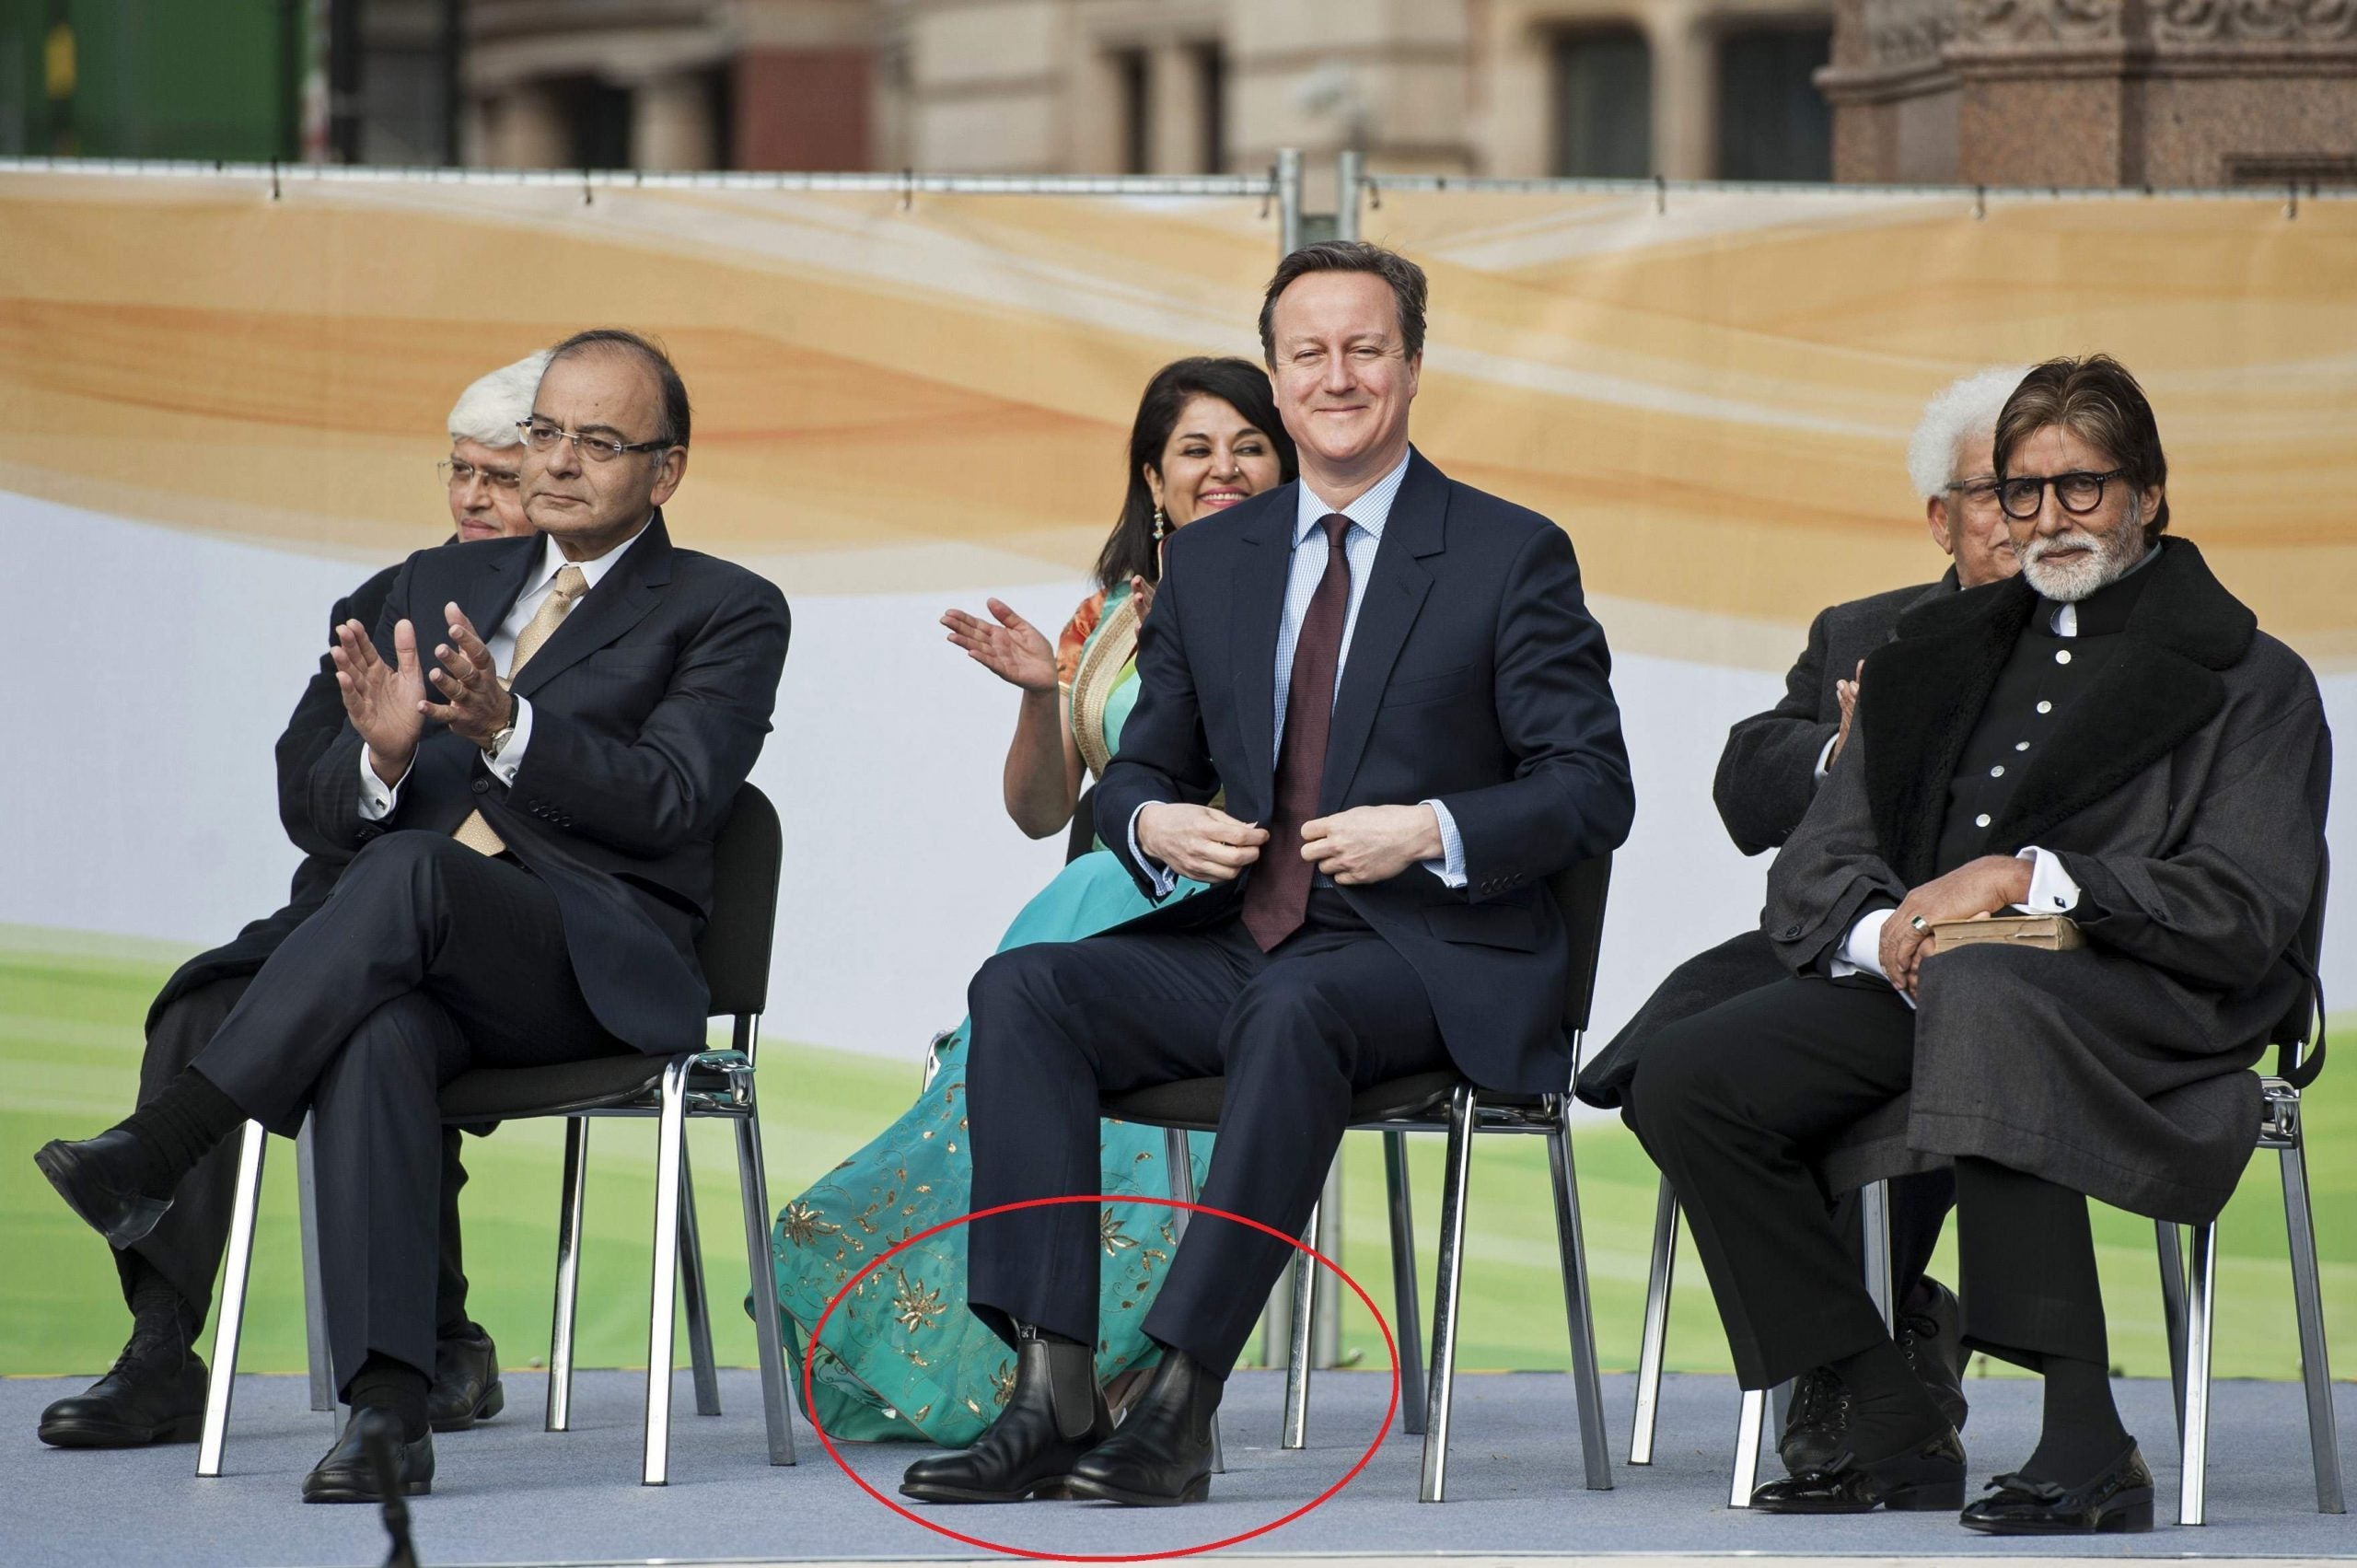 A politician's right to shoes: it's not just the women whose footwear is telling